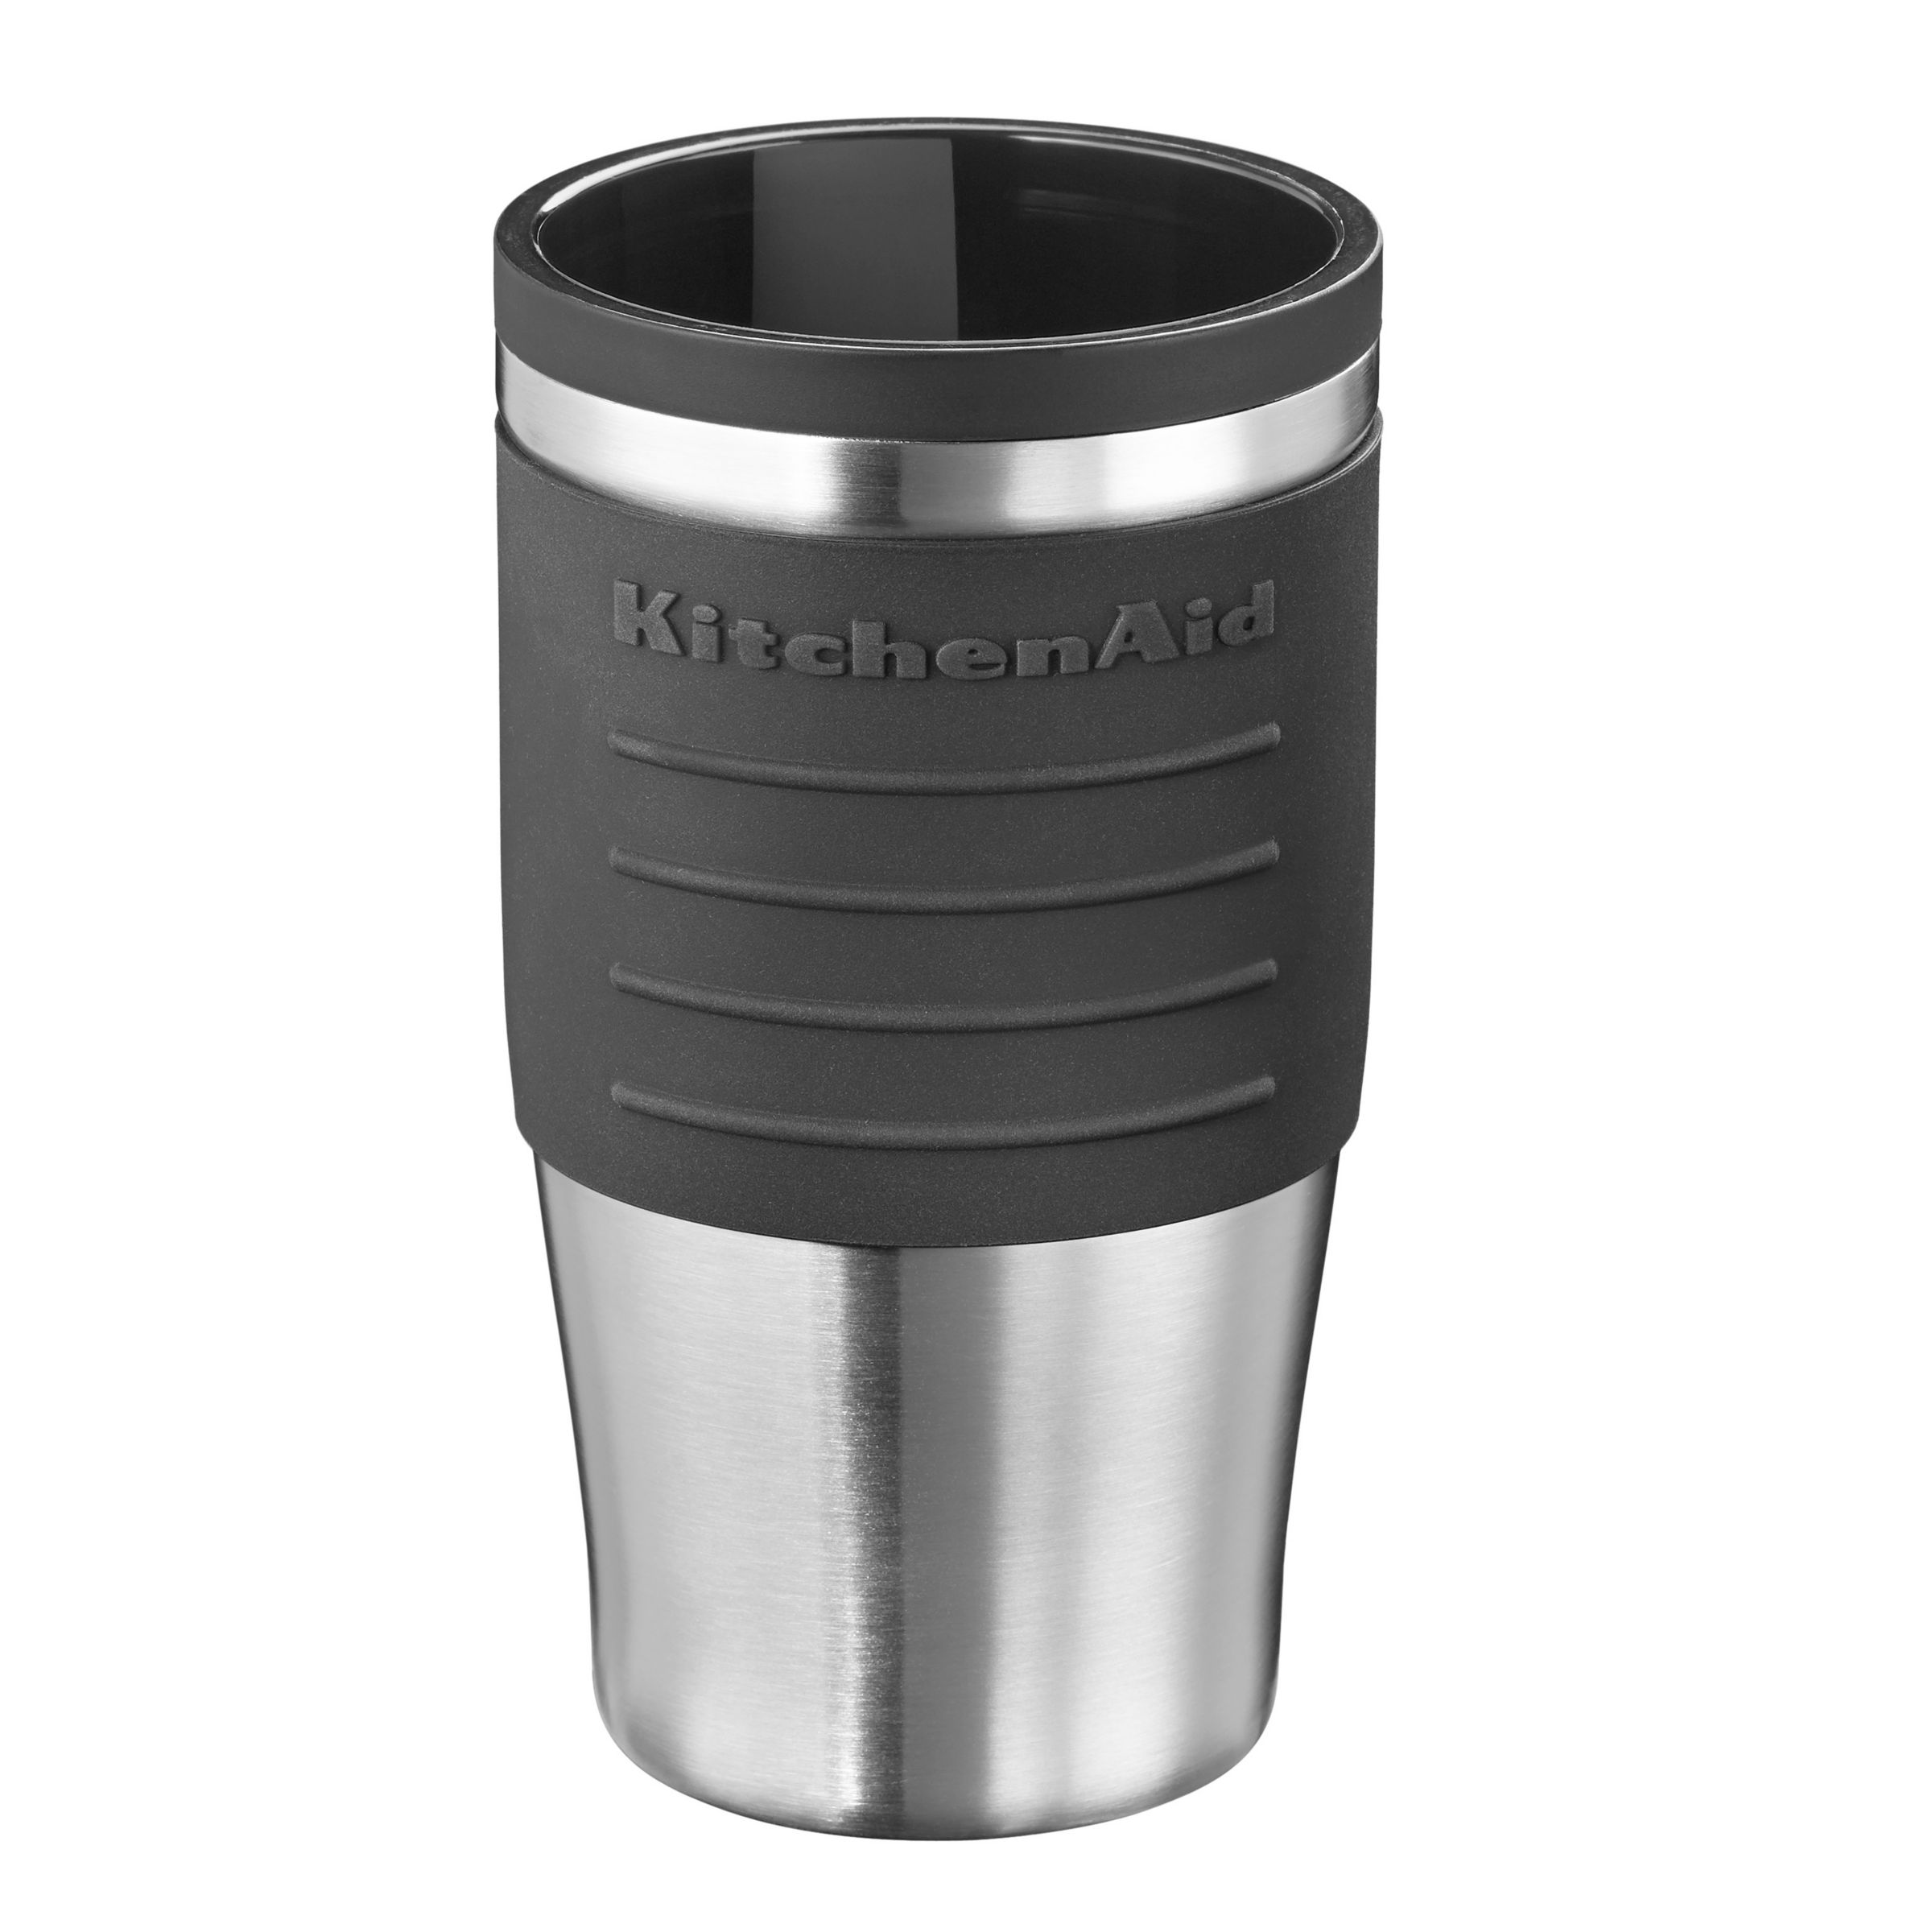 John Lewis Filter Coffee Maker Review : Buy KitchenAid Personal Filter Coffee Maker John Lewis